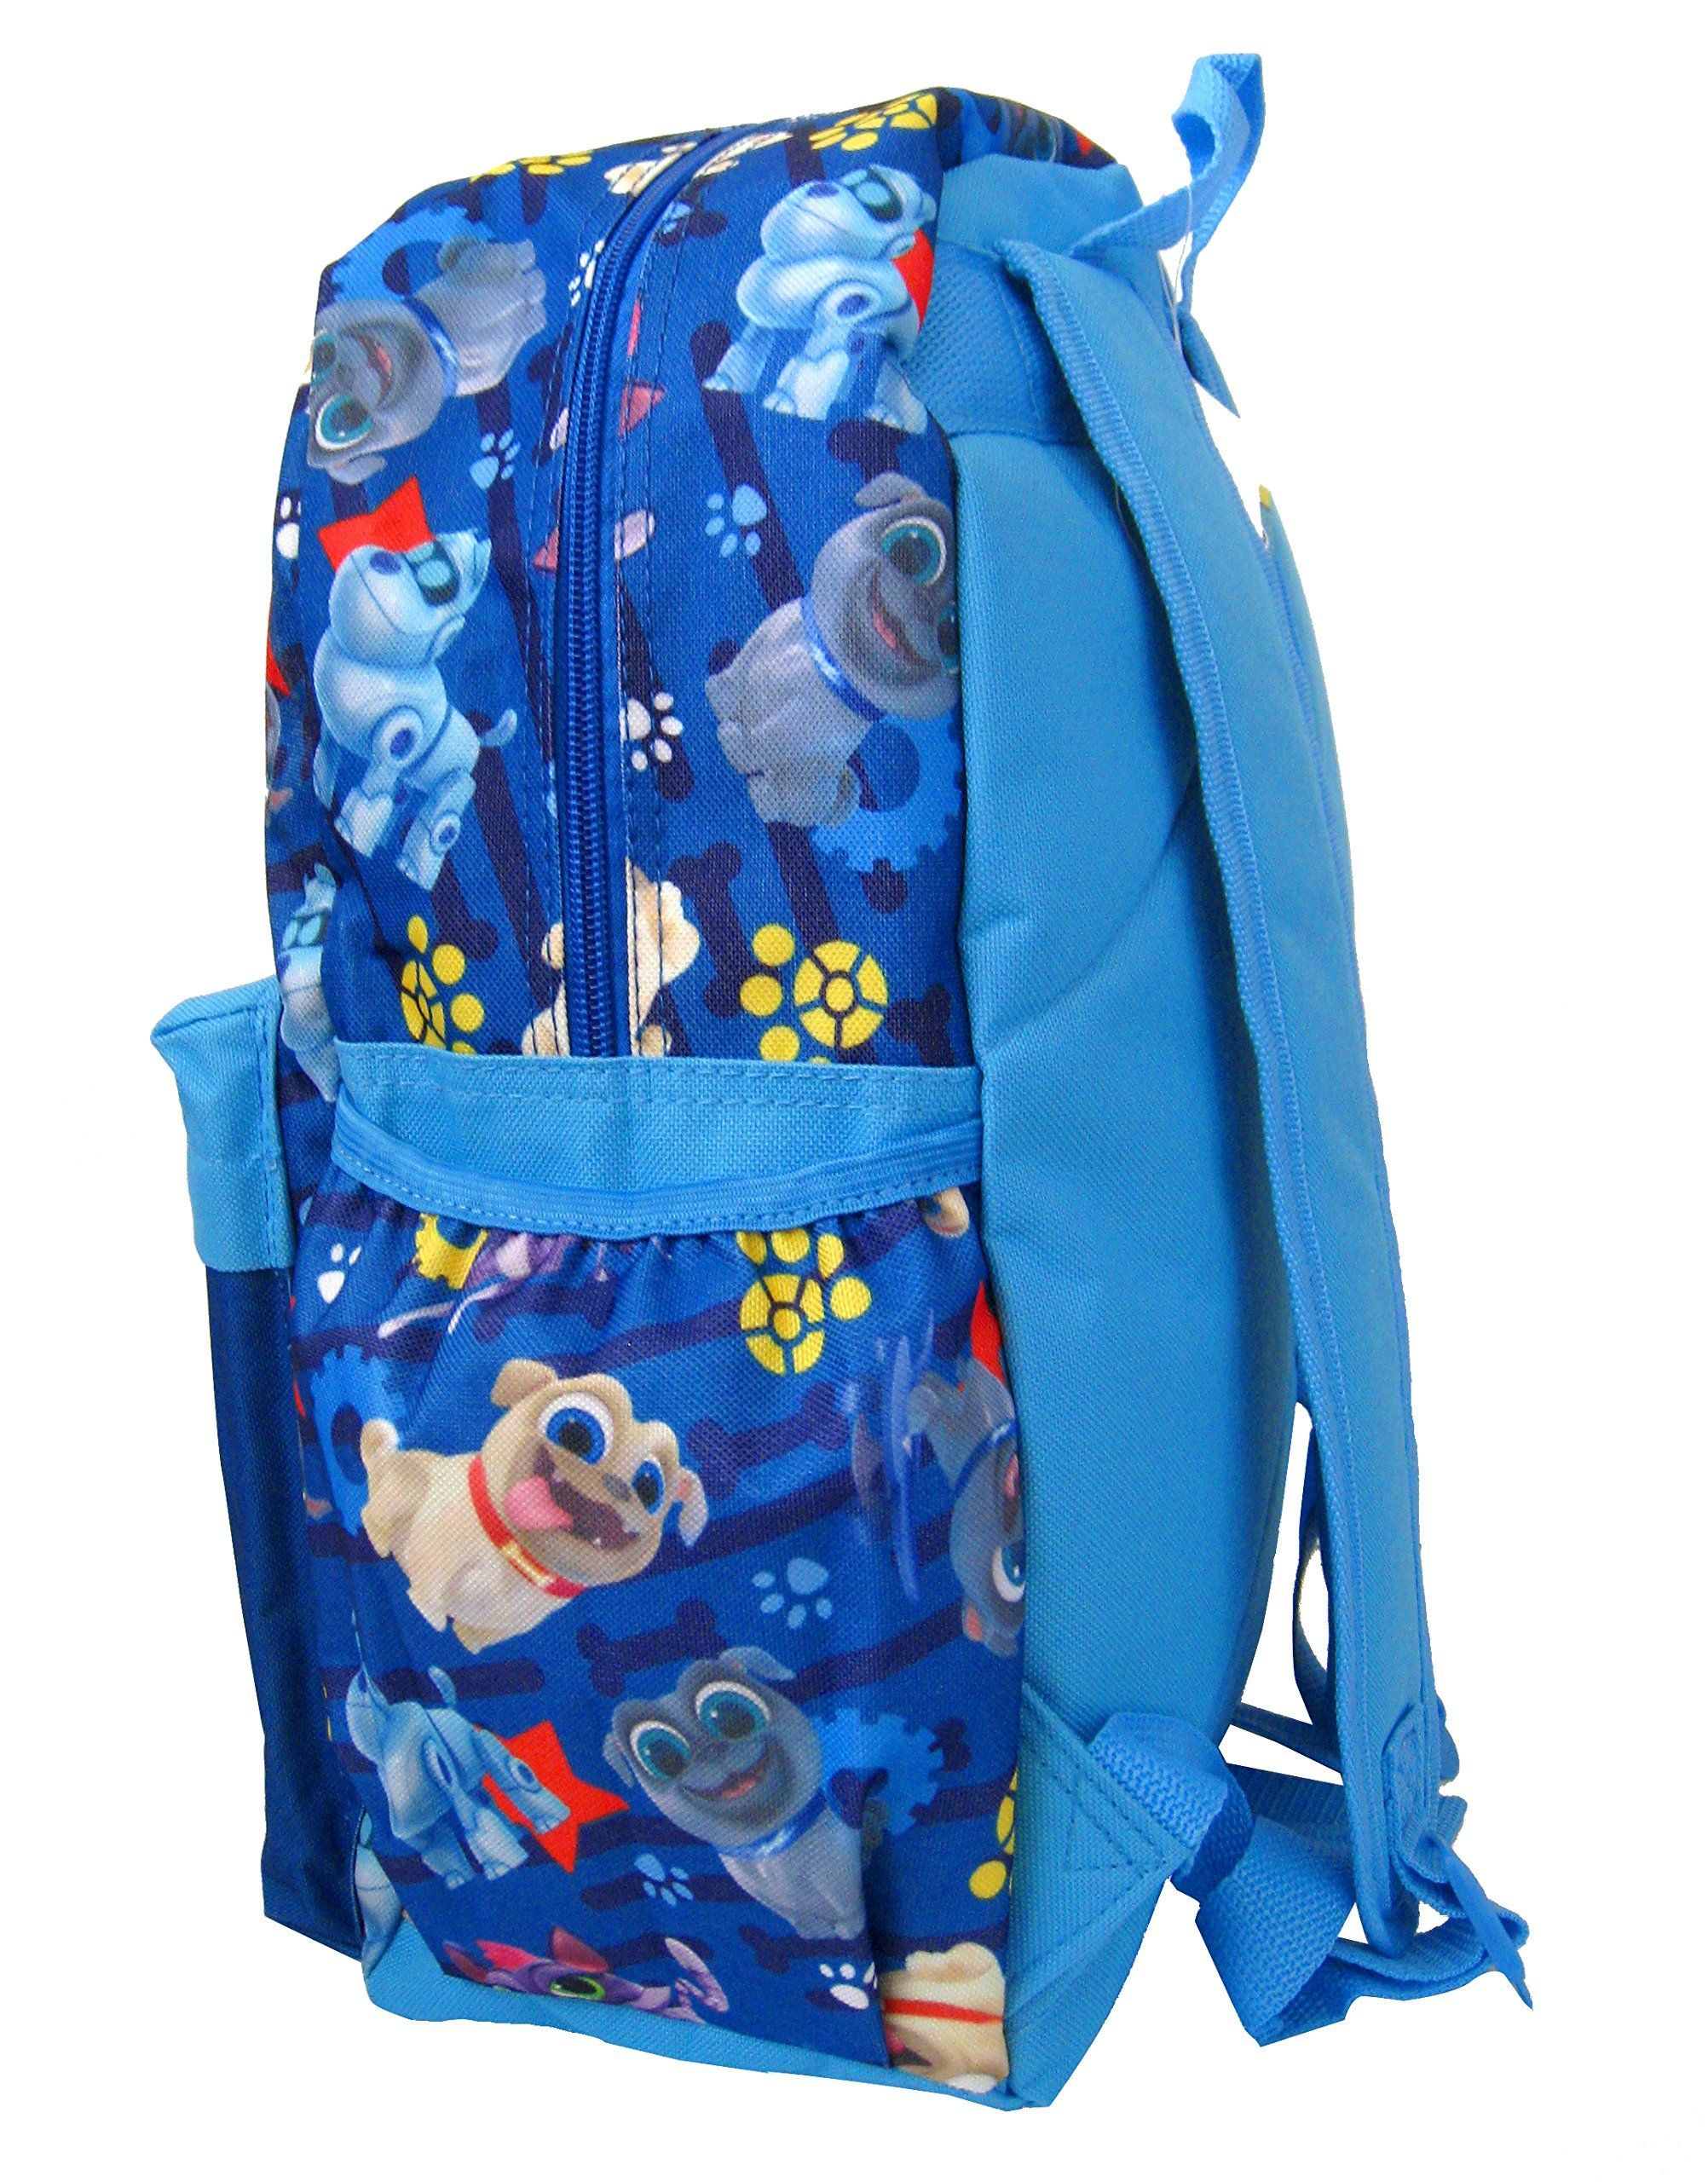 c32660ea657 Disney Puppy Dog Pals All Over Print 16 Backpack Bingo    Click image for  even more details. (This is an affiliate link).  funko